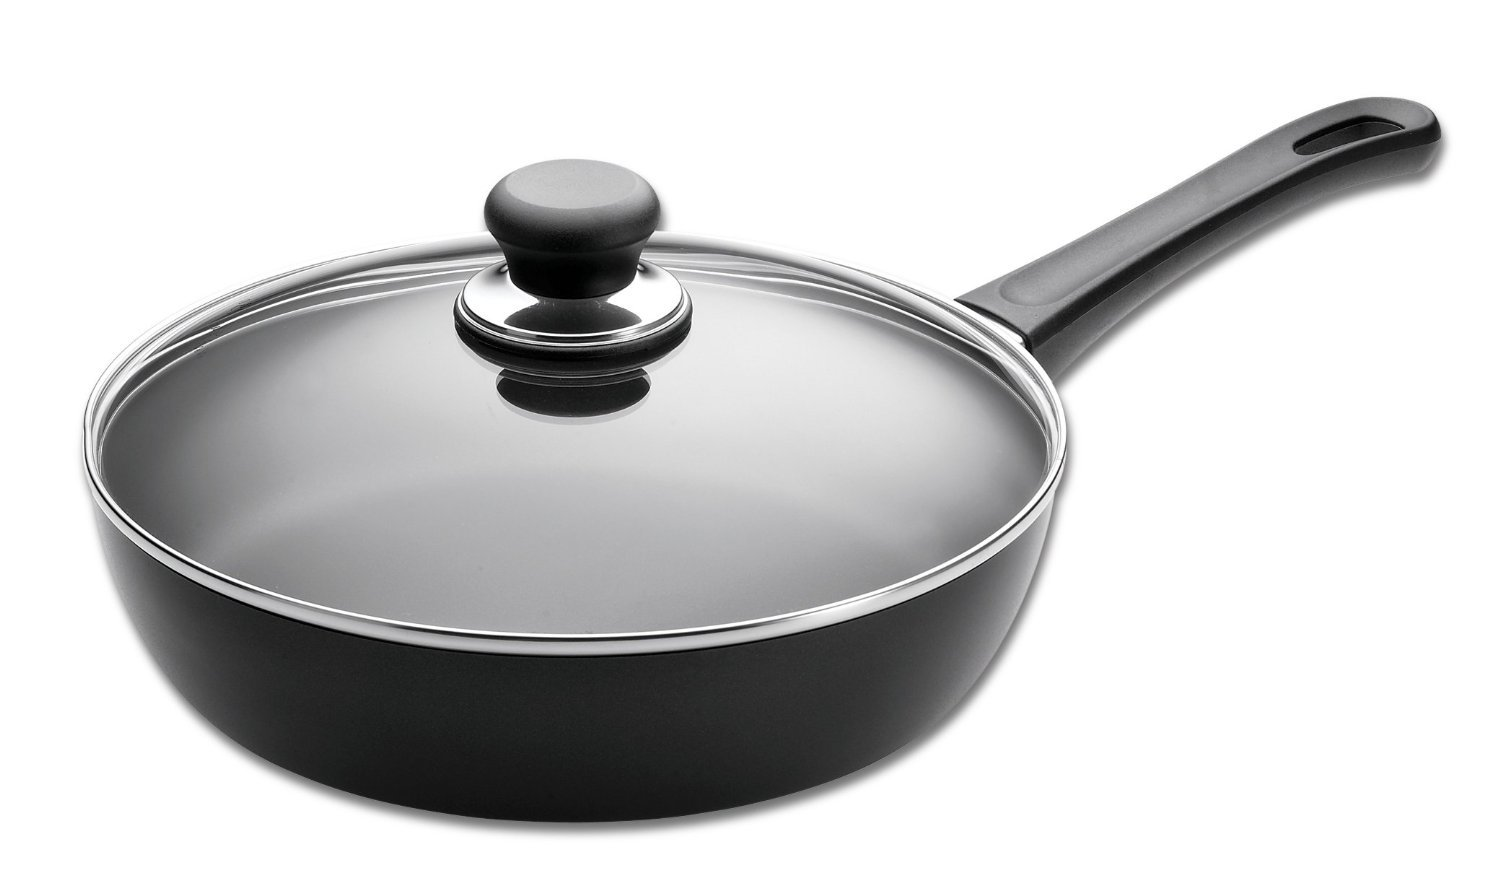 Scanpan Classic Covered Saute Pan, 10.25-Inch